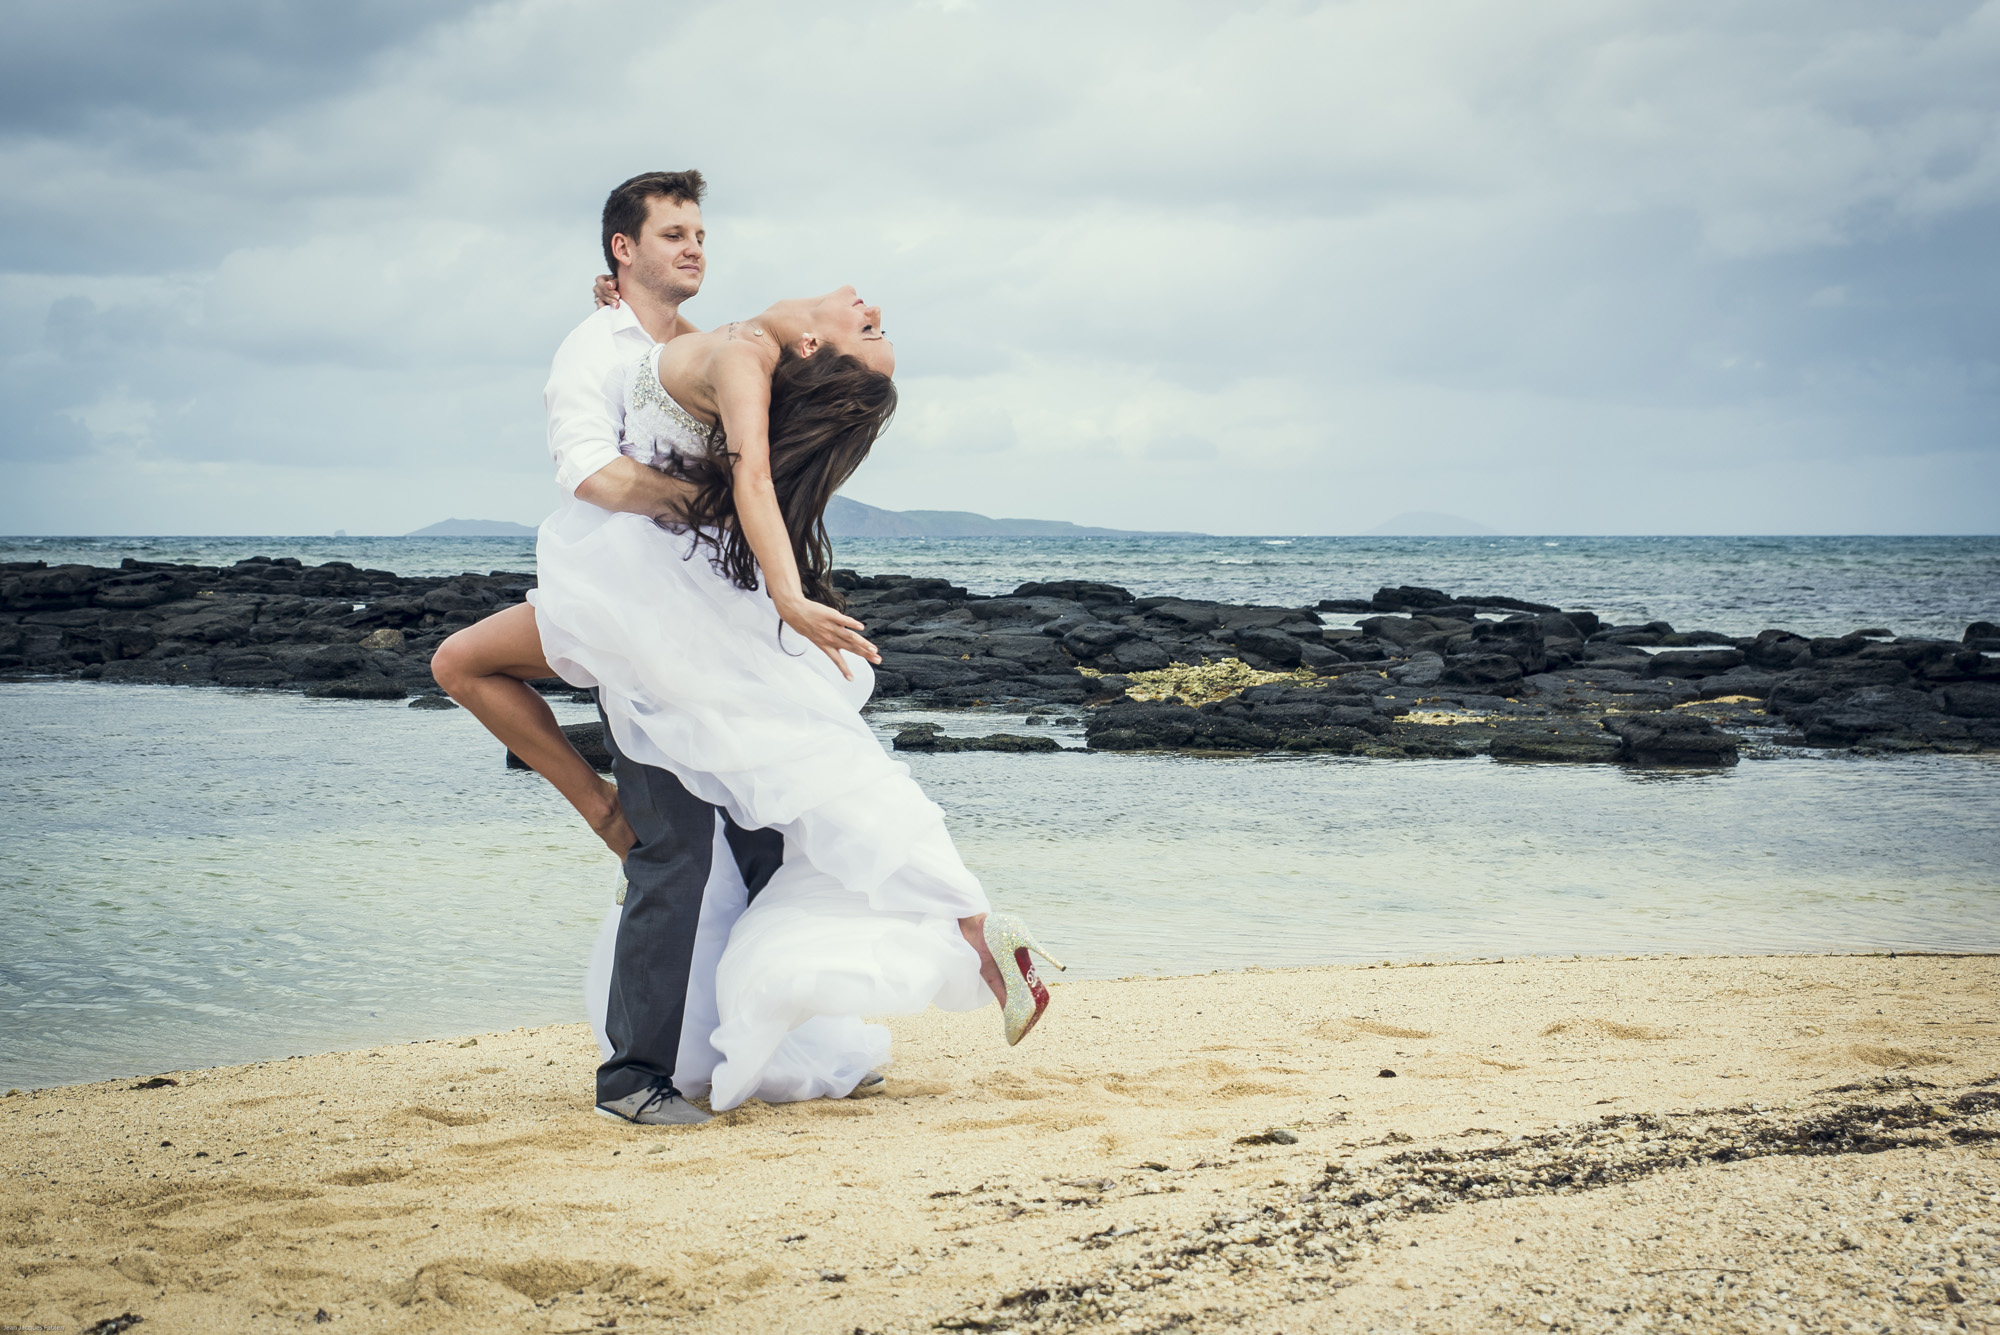 Justyna and Michael-207.jpg